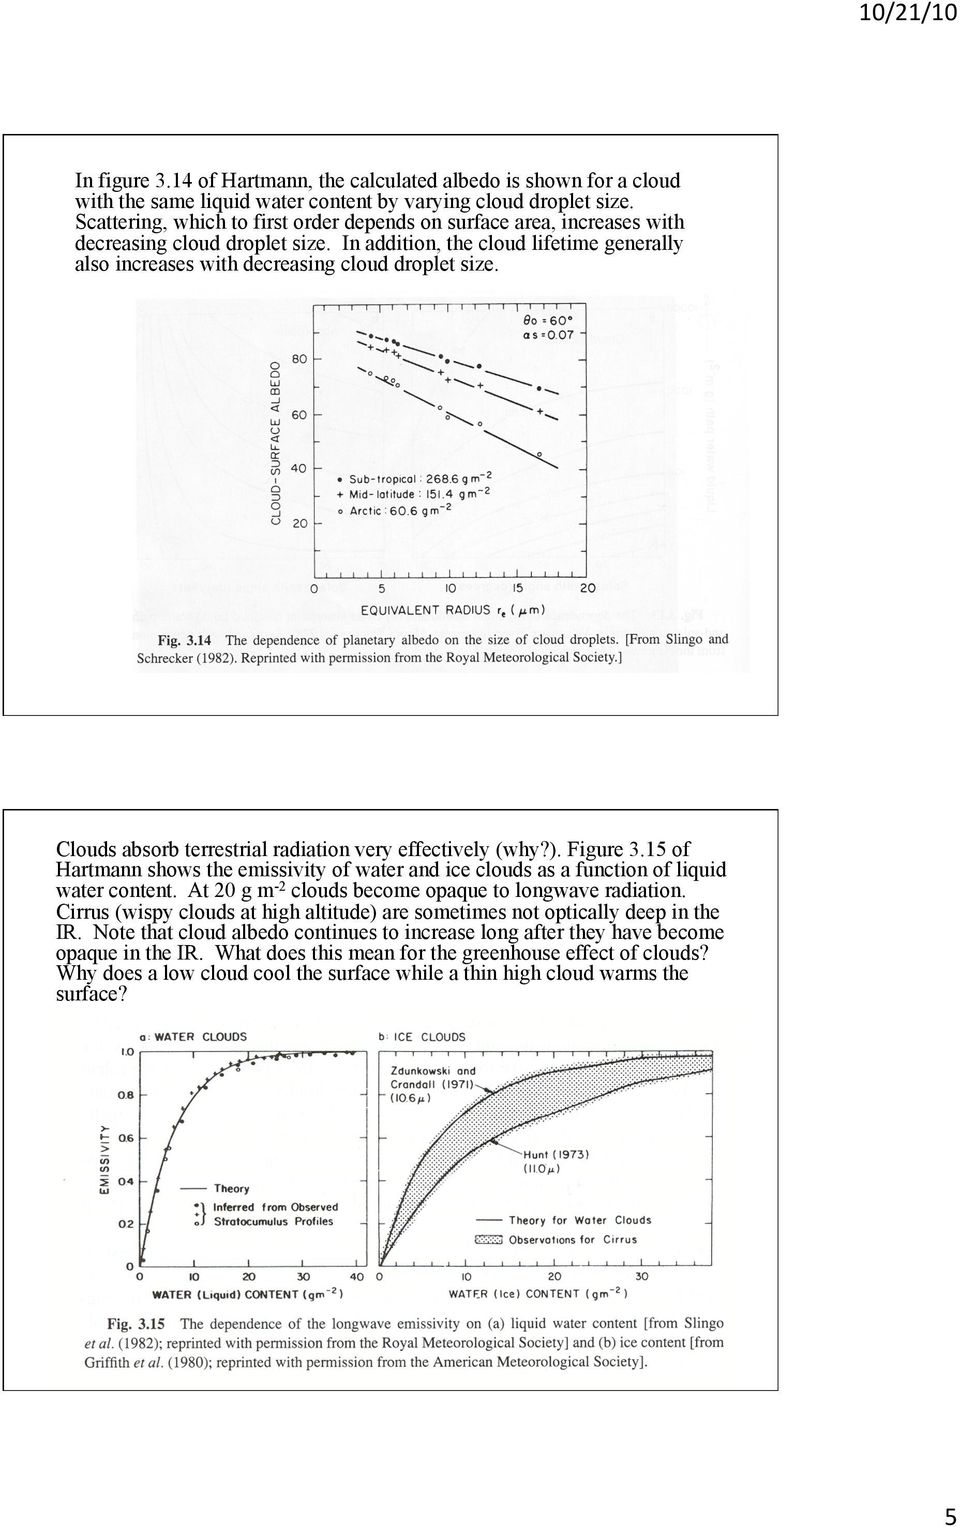 Clouds absorb terrestrial radiation very effectively (why?). Figure 3.15 of Hartmann shows the emissivity of water and ice clouds as a function of liquid water content.